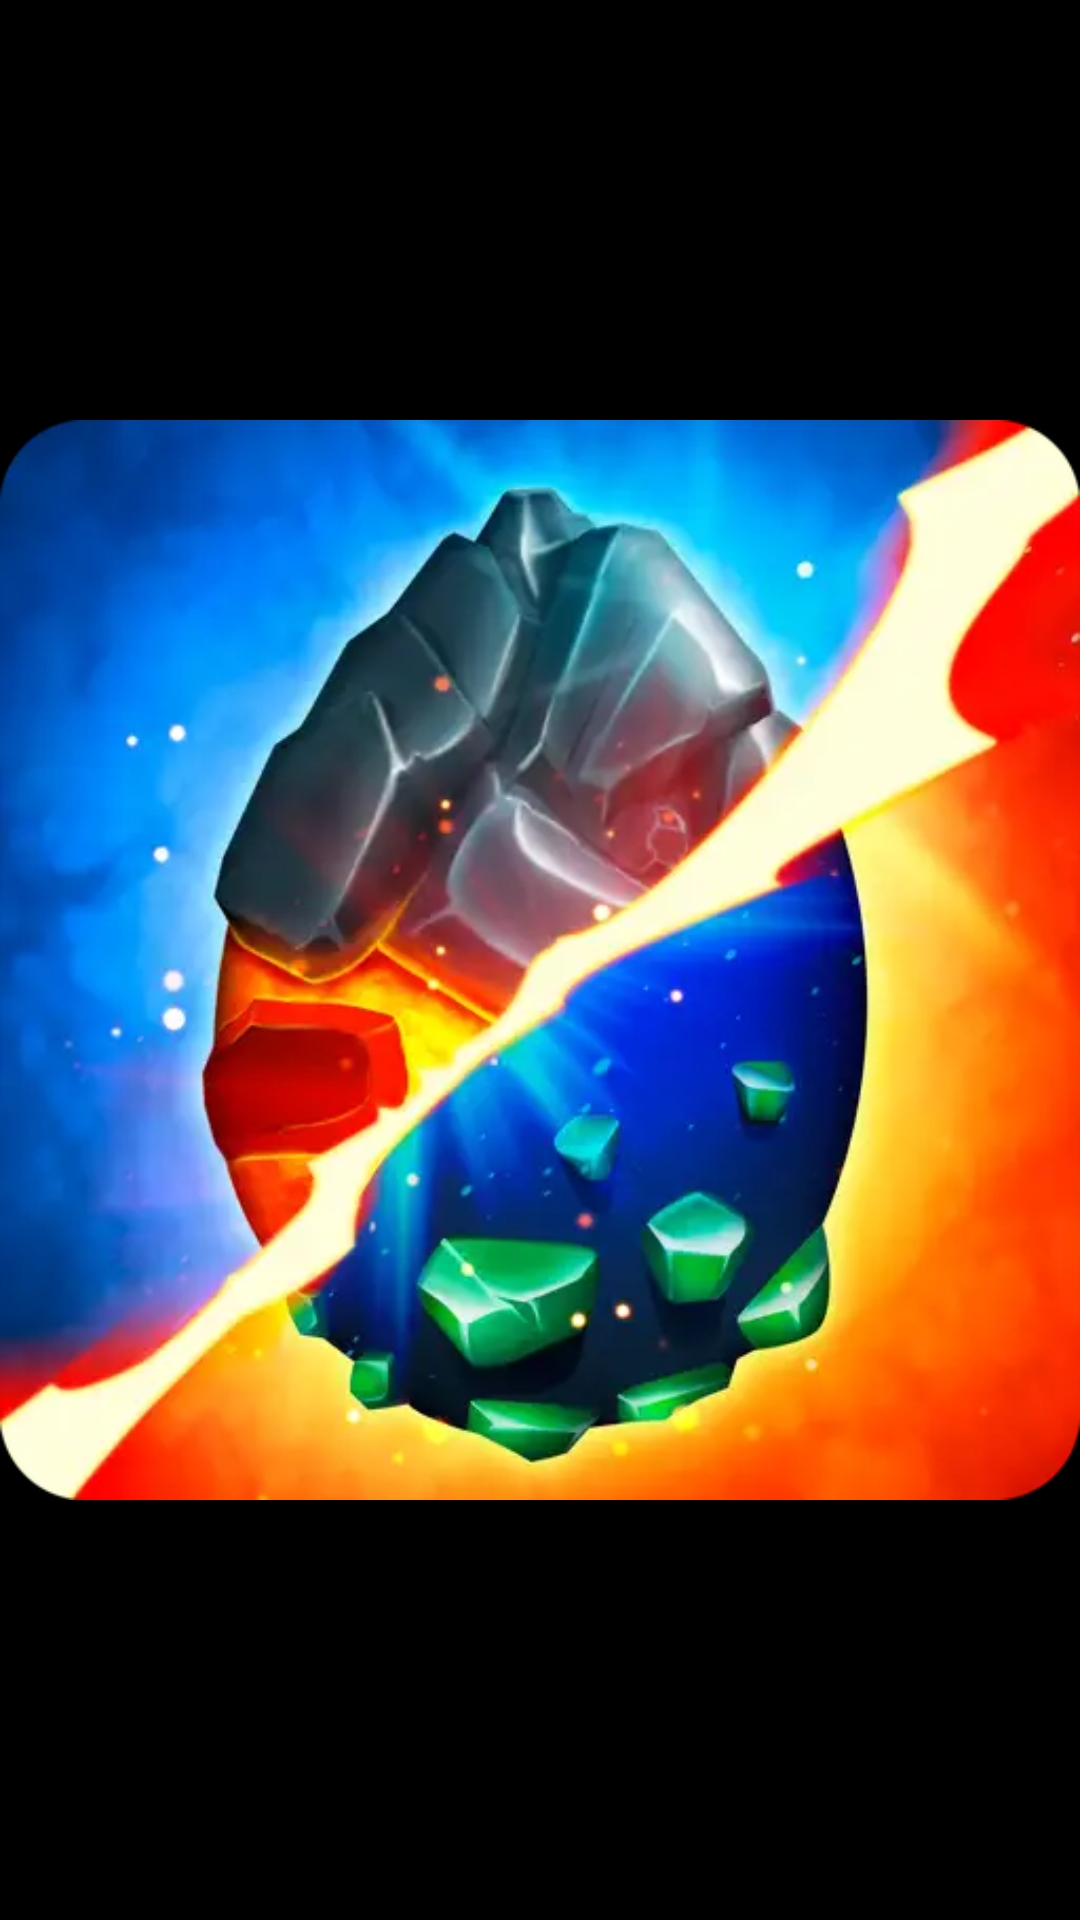 Slugterra: Slug it Out! Mod apk download - Epic Story Interactive